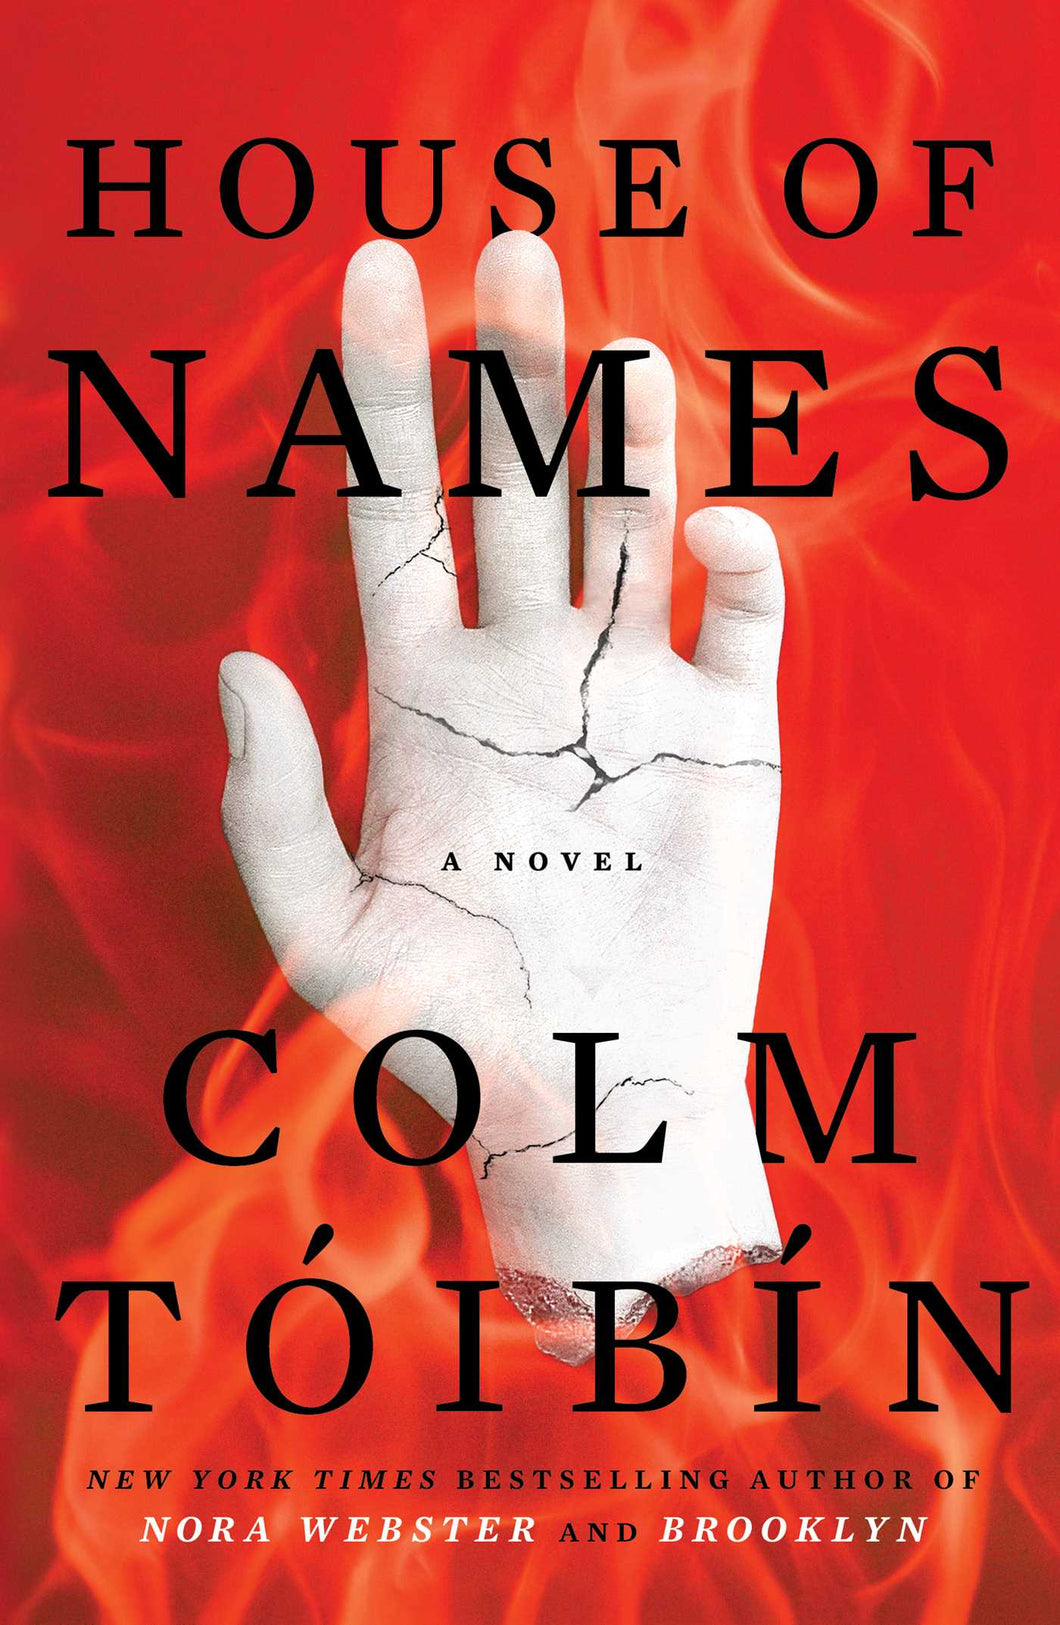 House of Names - Colm Tóibín (hardcover) - Boekenmarkt de Markies